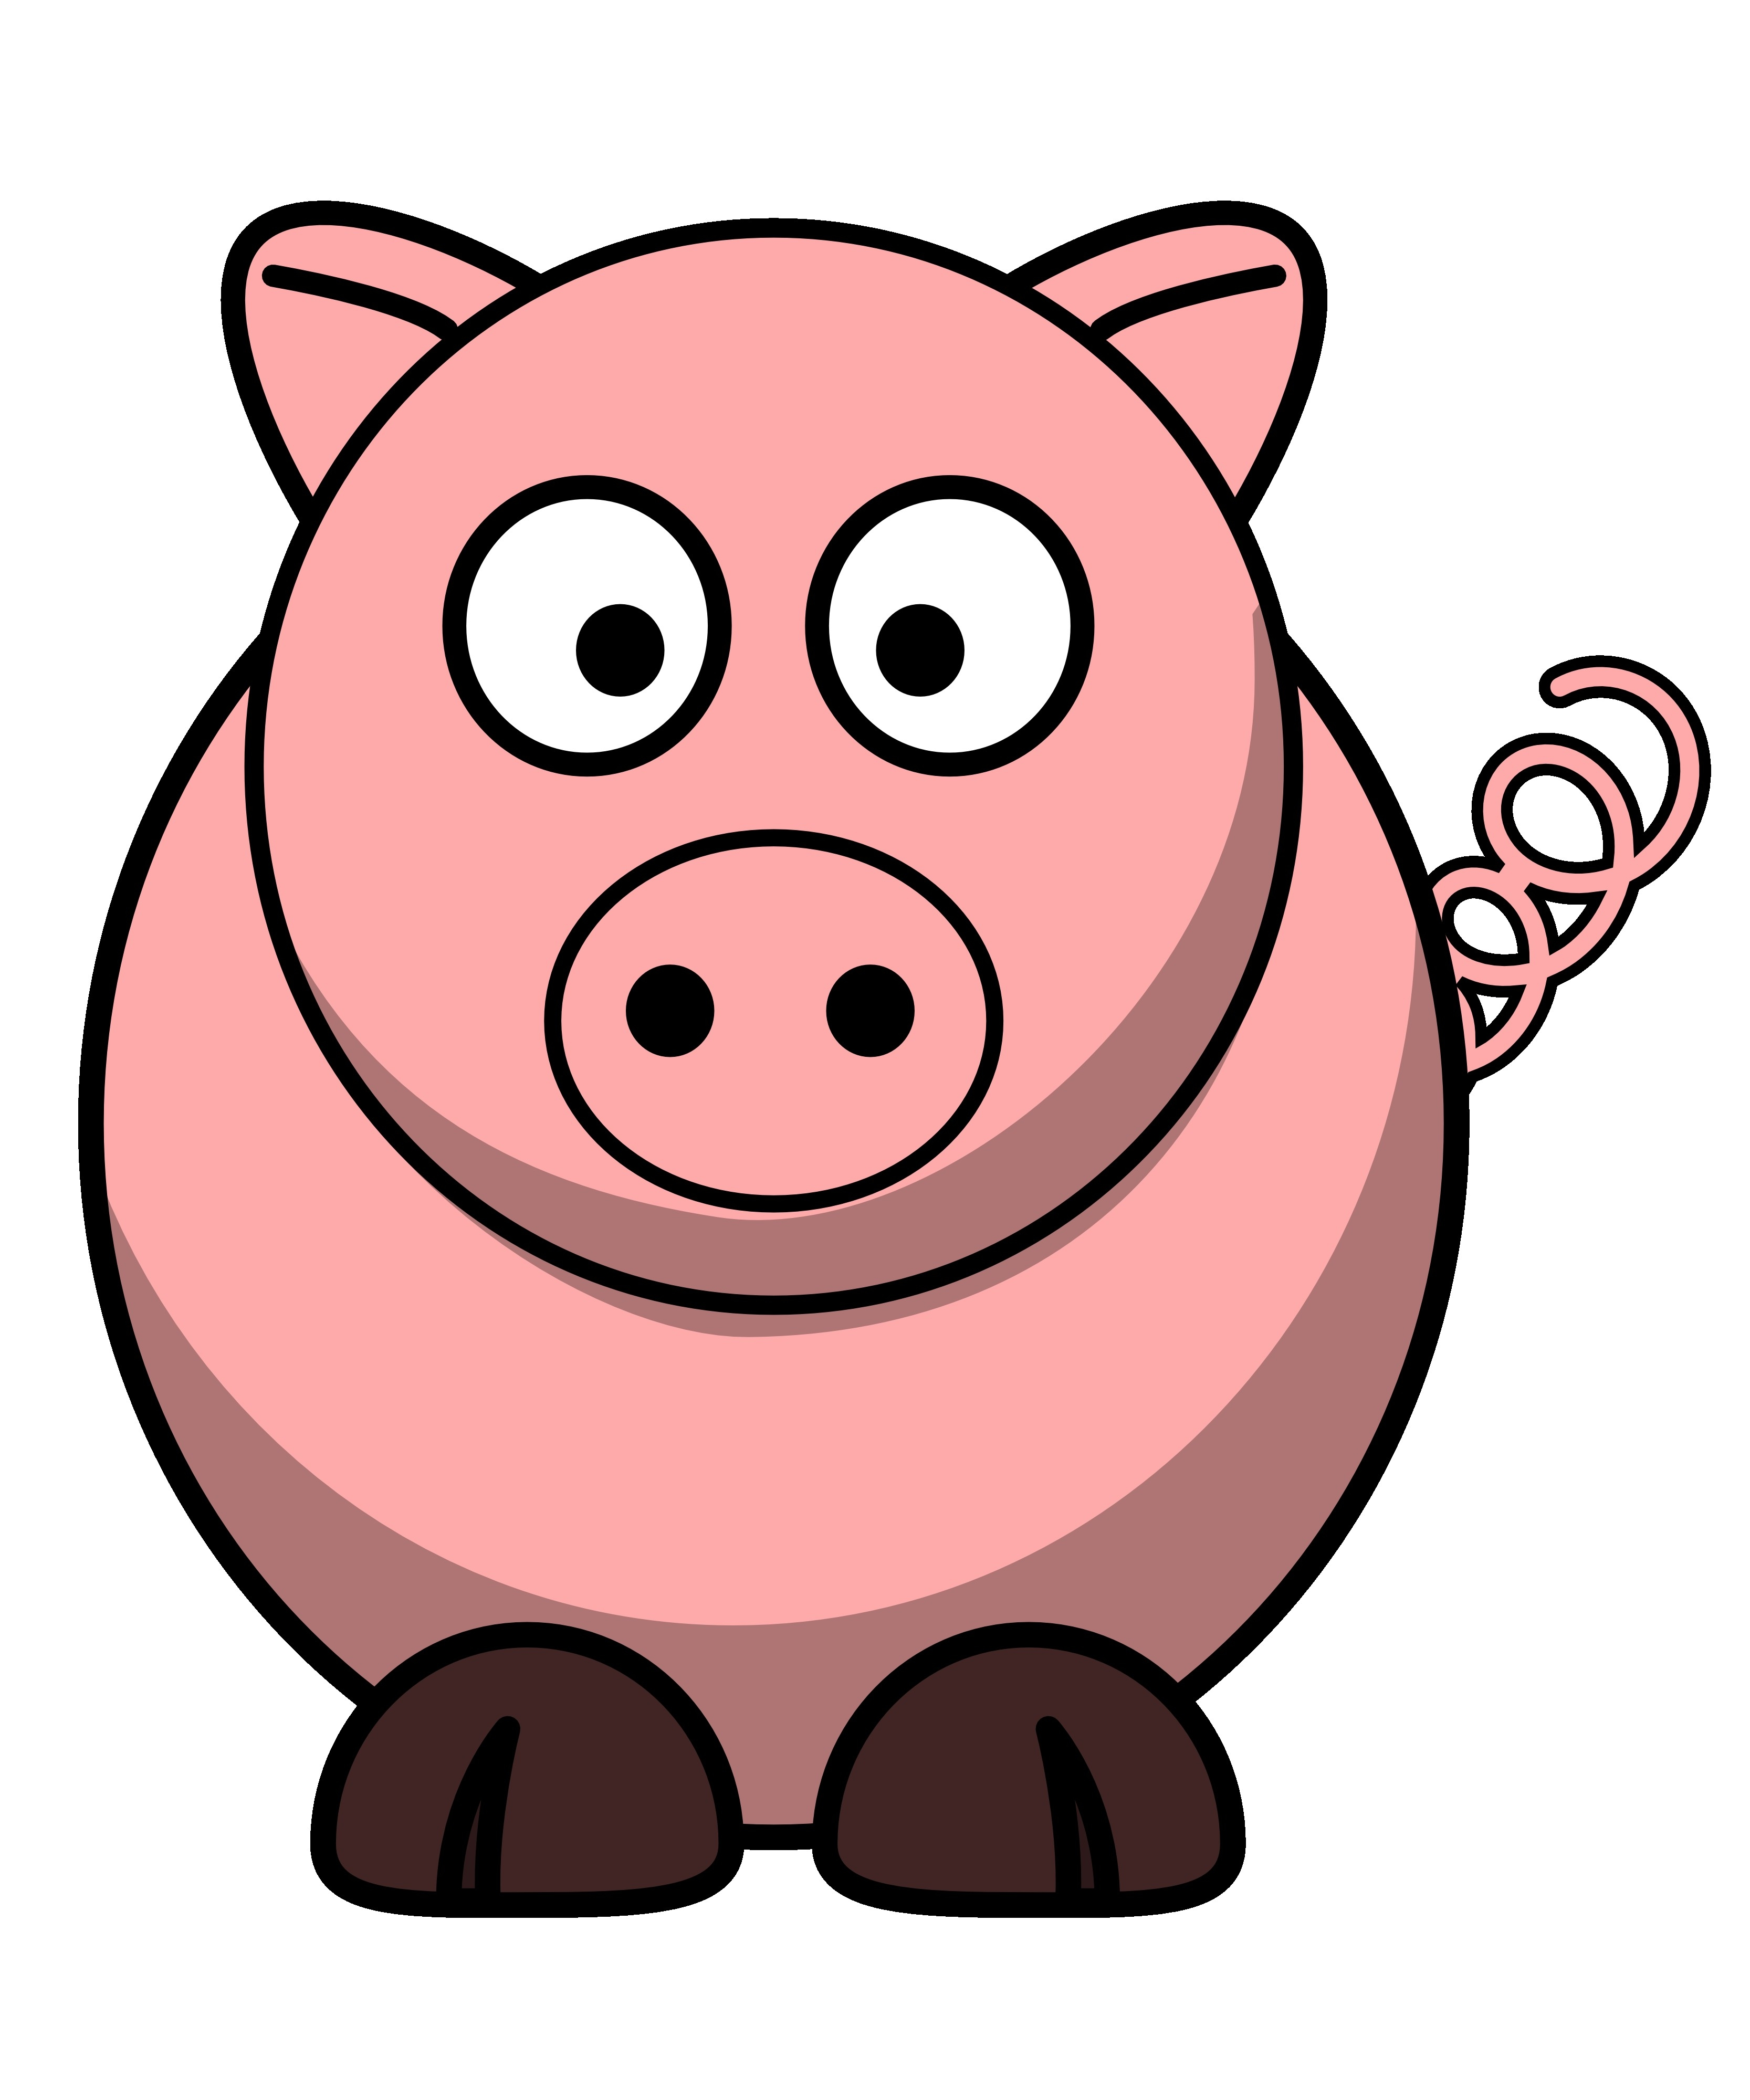 Pigs clipart simple. New gallery digital collection